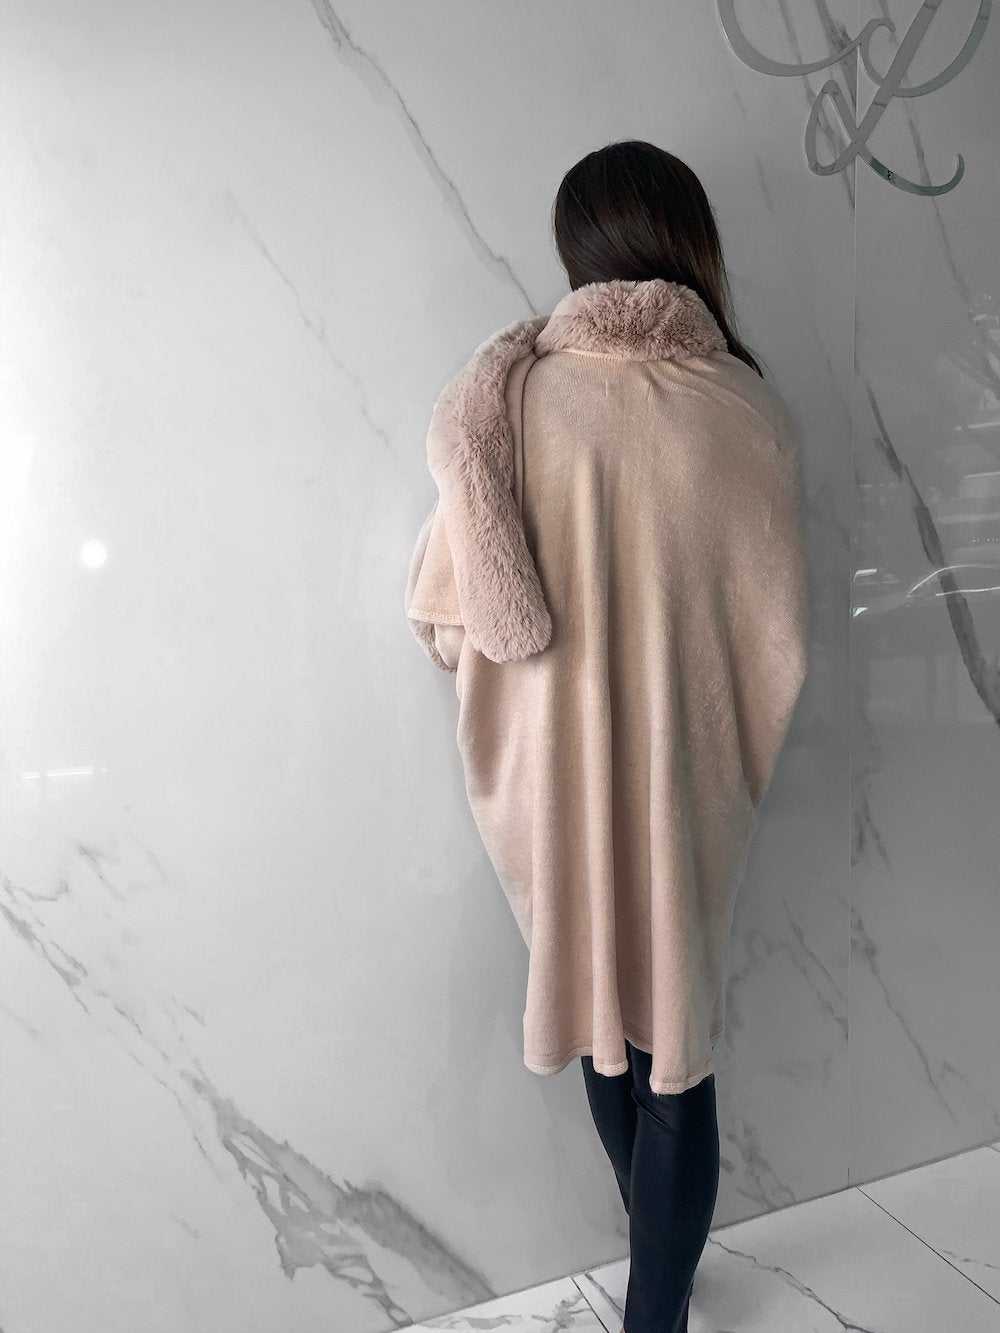 Dova Coat, Women's Blush Coats